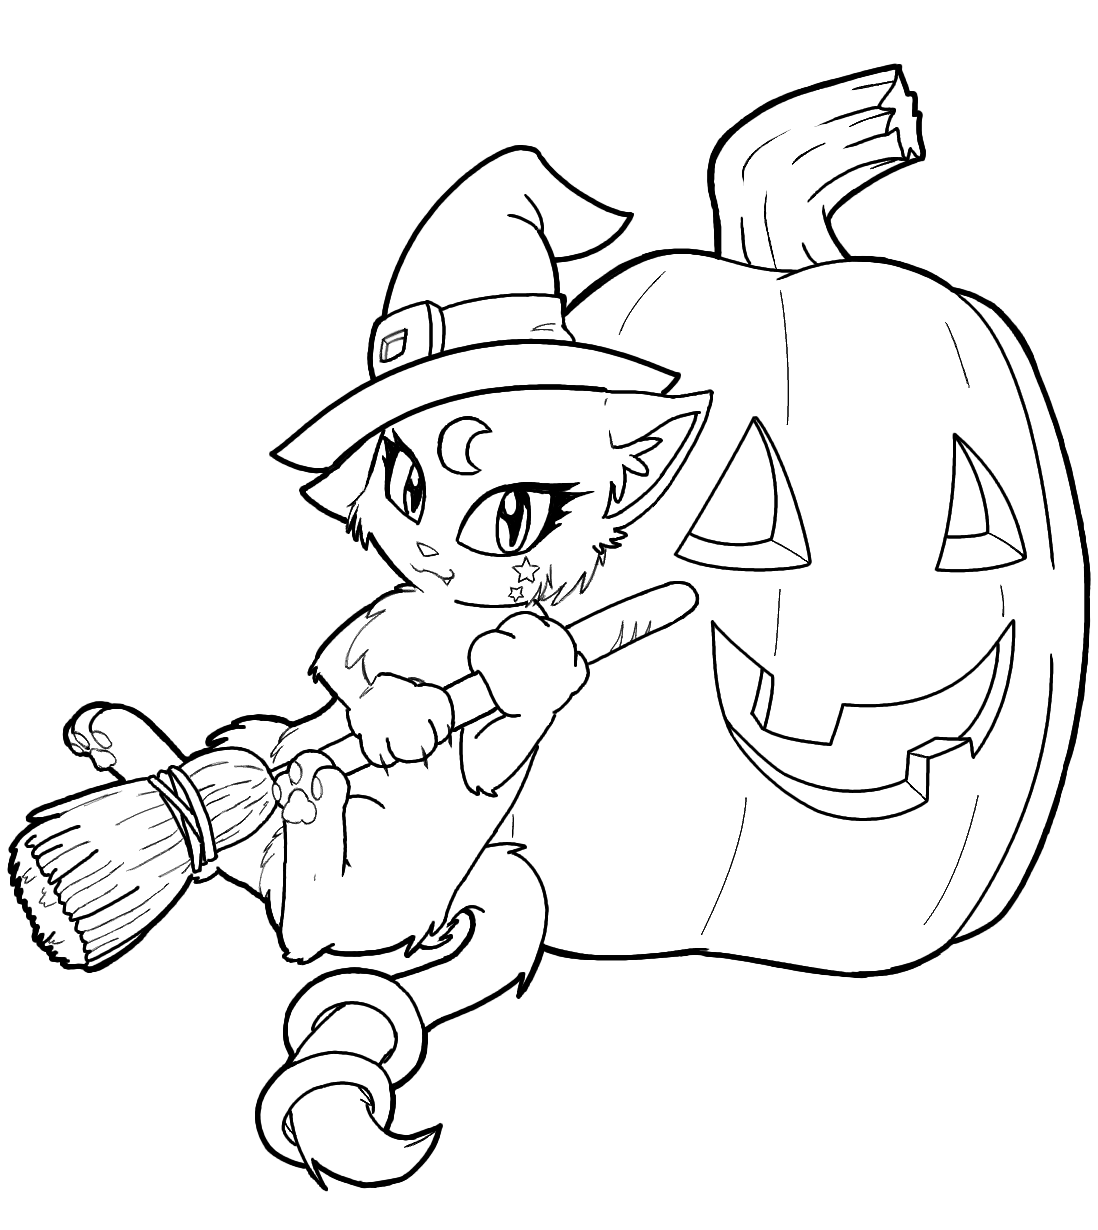 Free Printable Witch Coloring Pages For Kids Witch Coloring Pages Halloween Coloring Pictures Halloween Coloring Pages